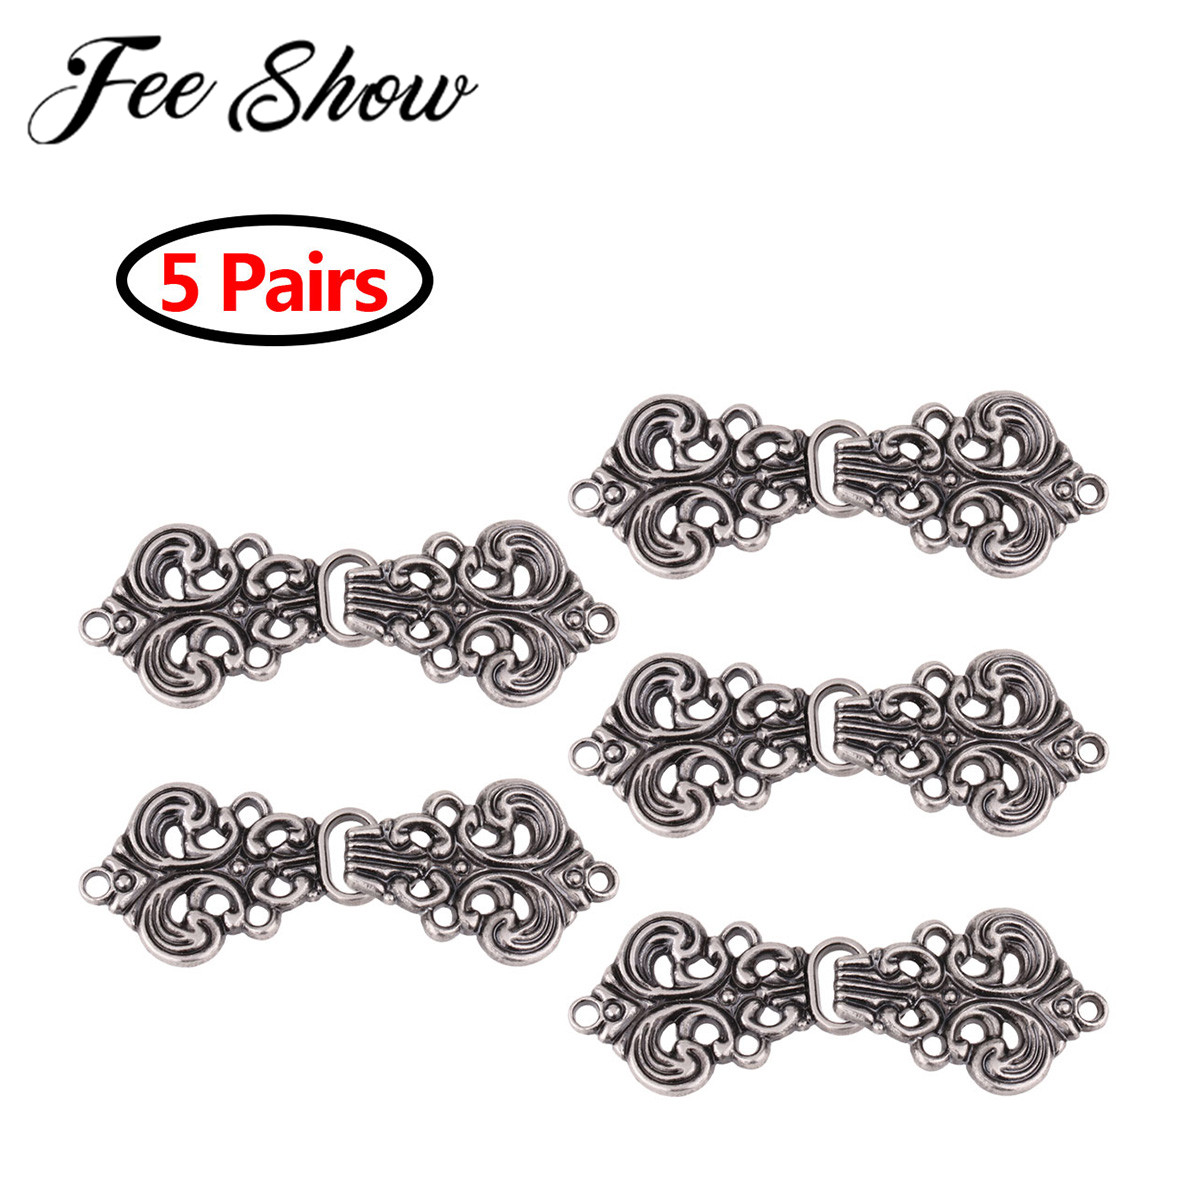 5 Pairs Vintage Accessories Cardigan Clip Clasp Fasteners Swirl Flower Cloak Clasp Fasteners Sew On Hooks Collar Metal Brooches Детская кроватка